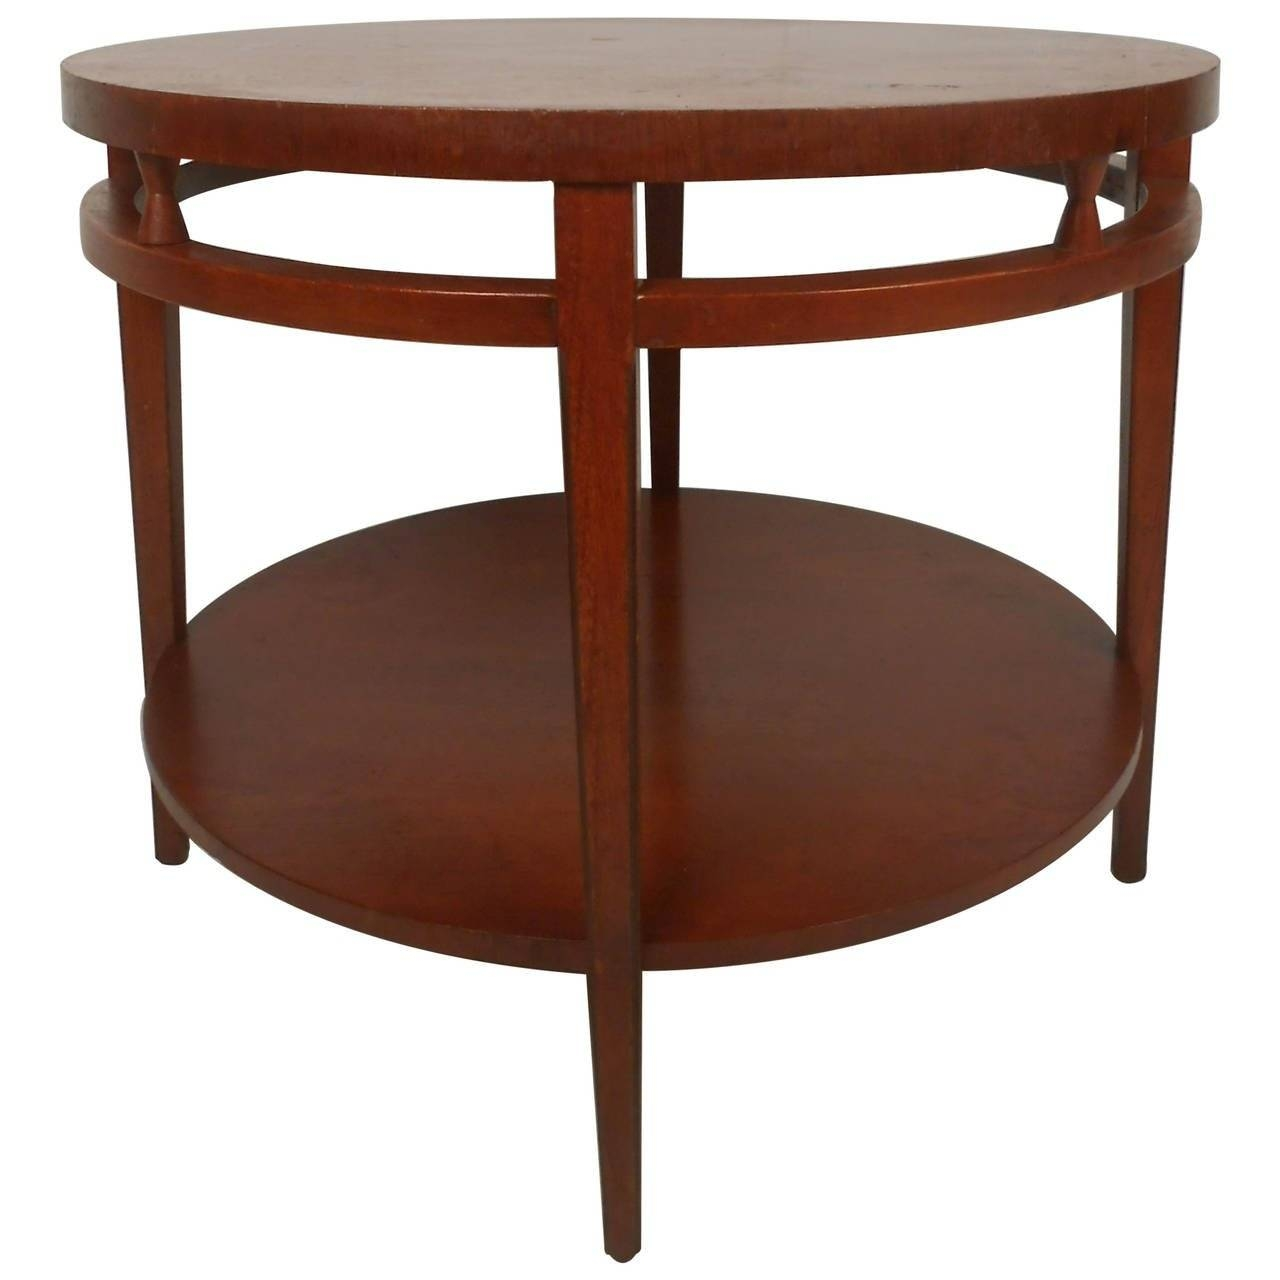 Midcentury Lane Style Two-Tier Round Coffee Table For Sale At 1Stdibs with regard to Circular Coffee Tables (Image 26 of 30)